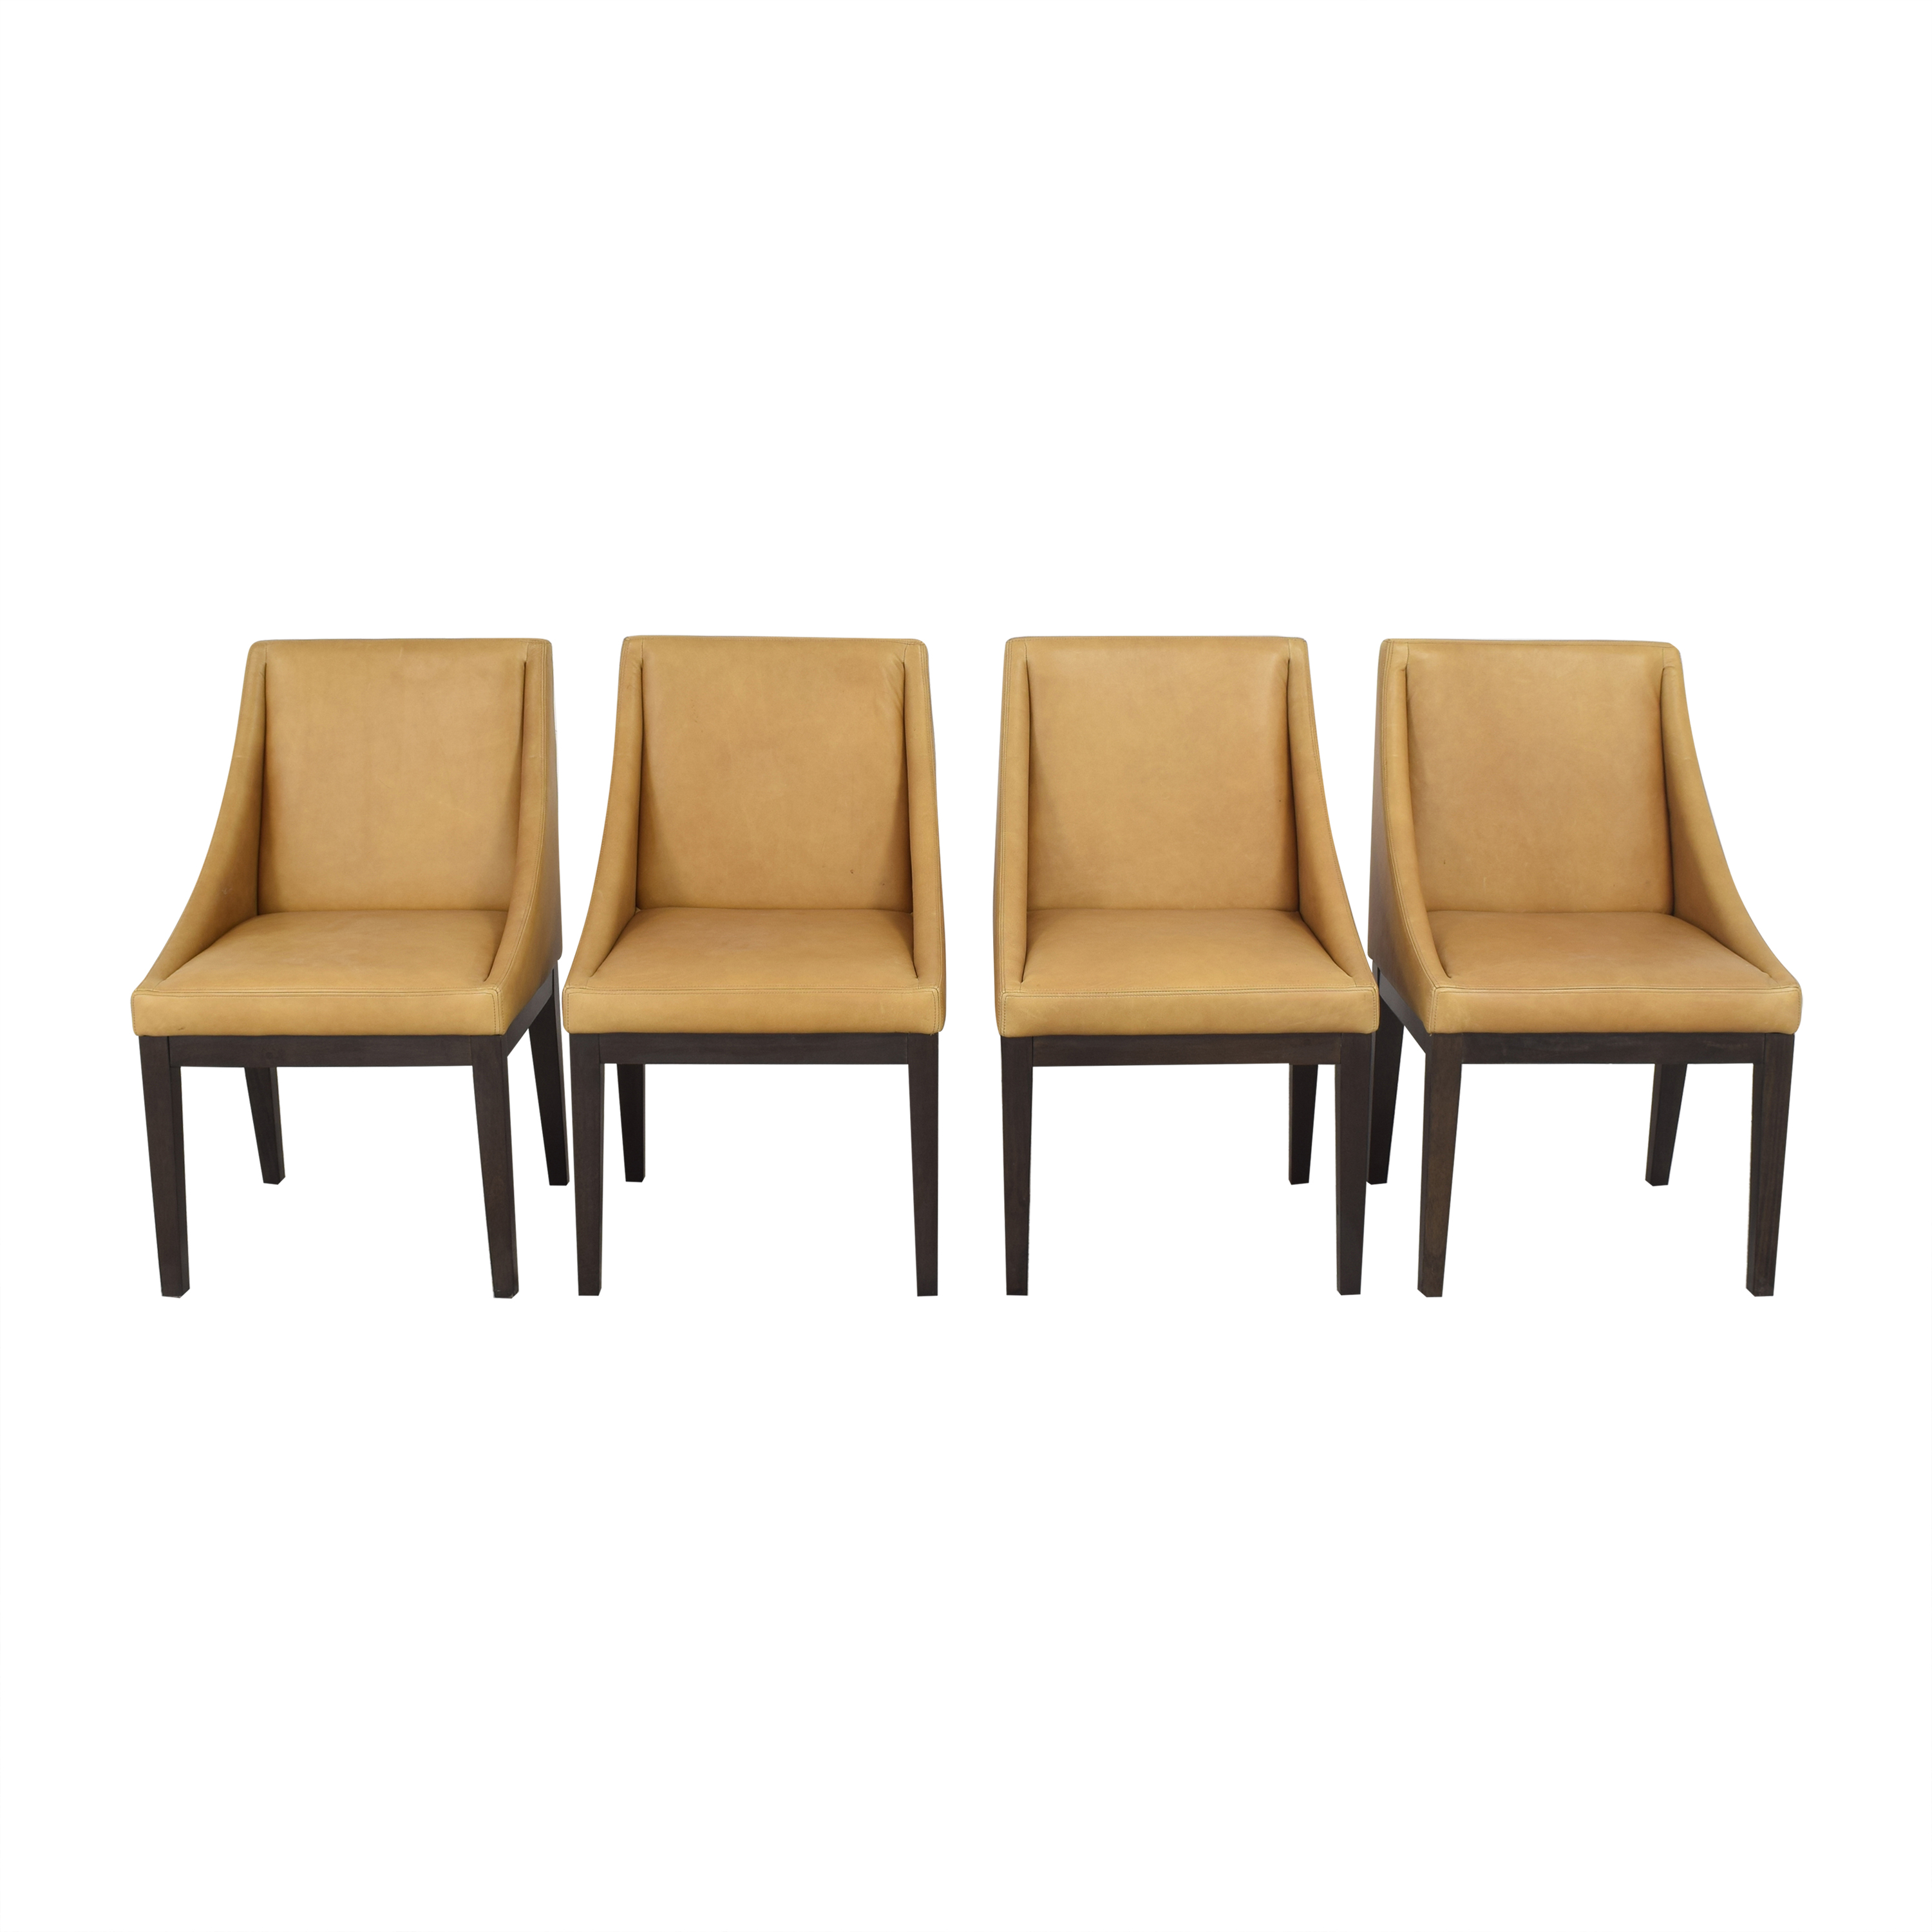 West Elm Curved Upholstered Chairs / Chairs